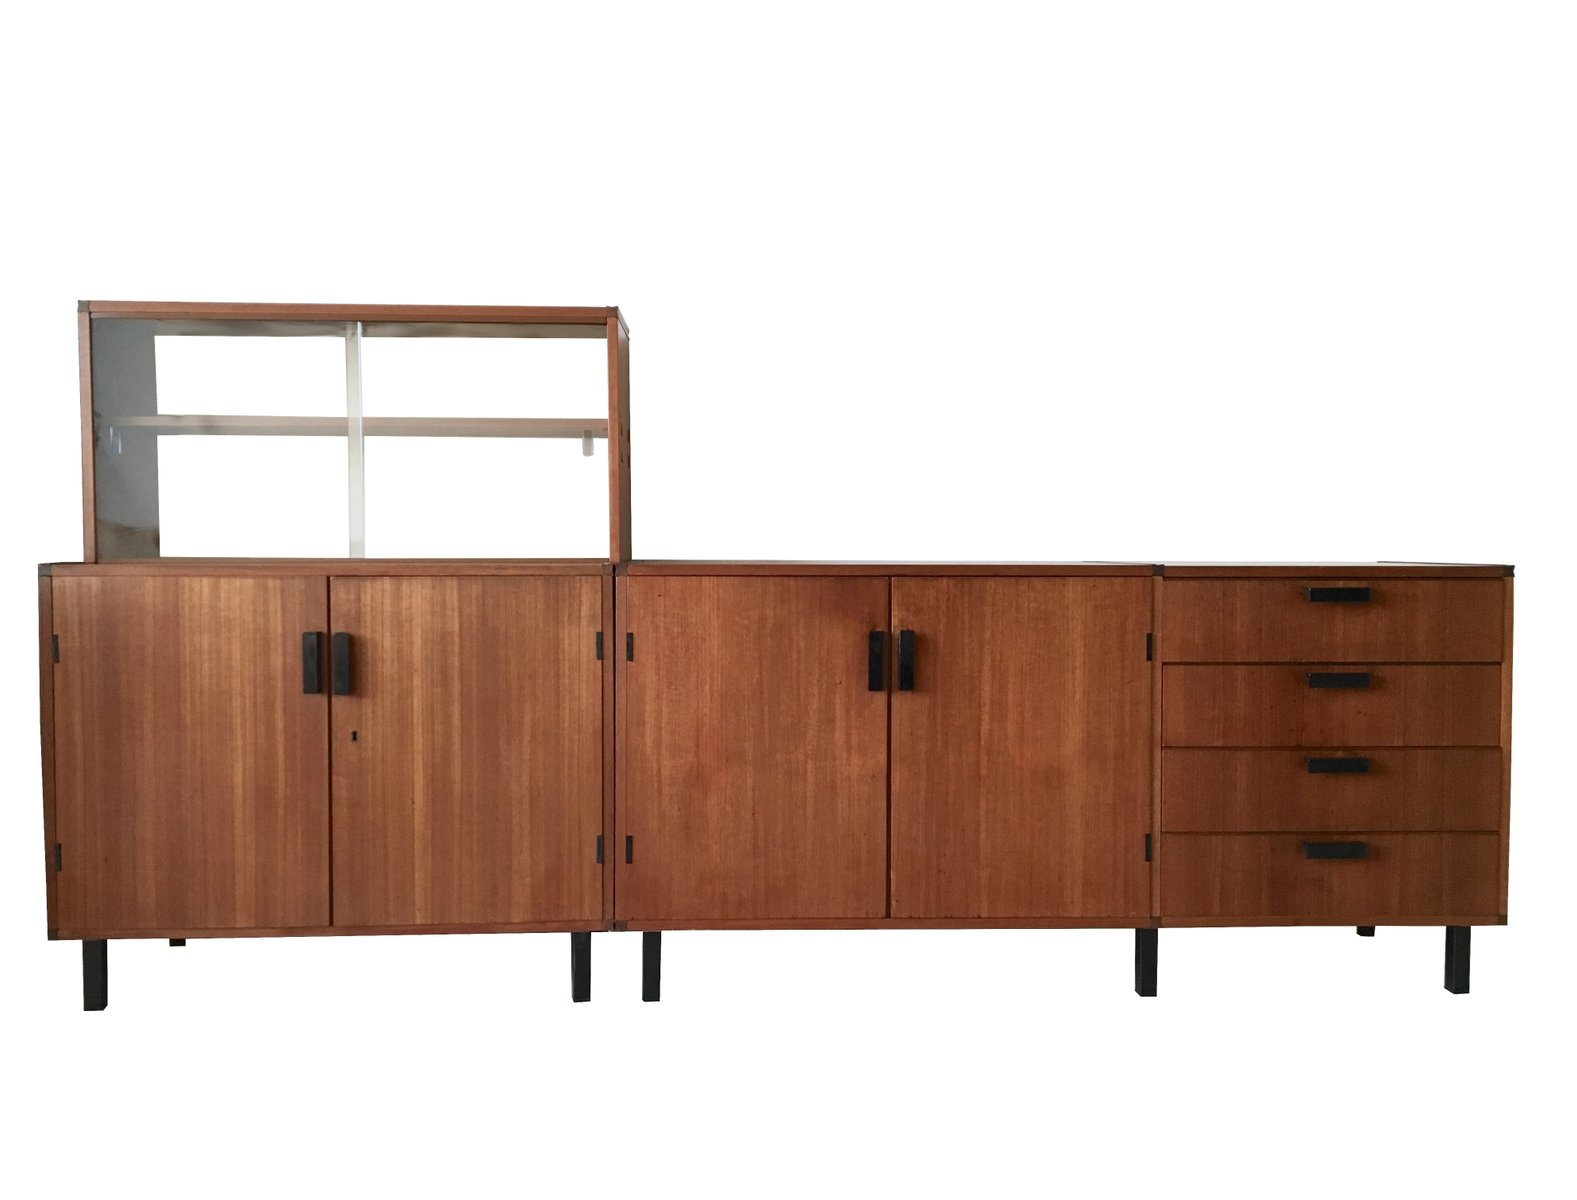 Made To Measure Series Modular Sideboard By Cees Braakman For Pastoe